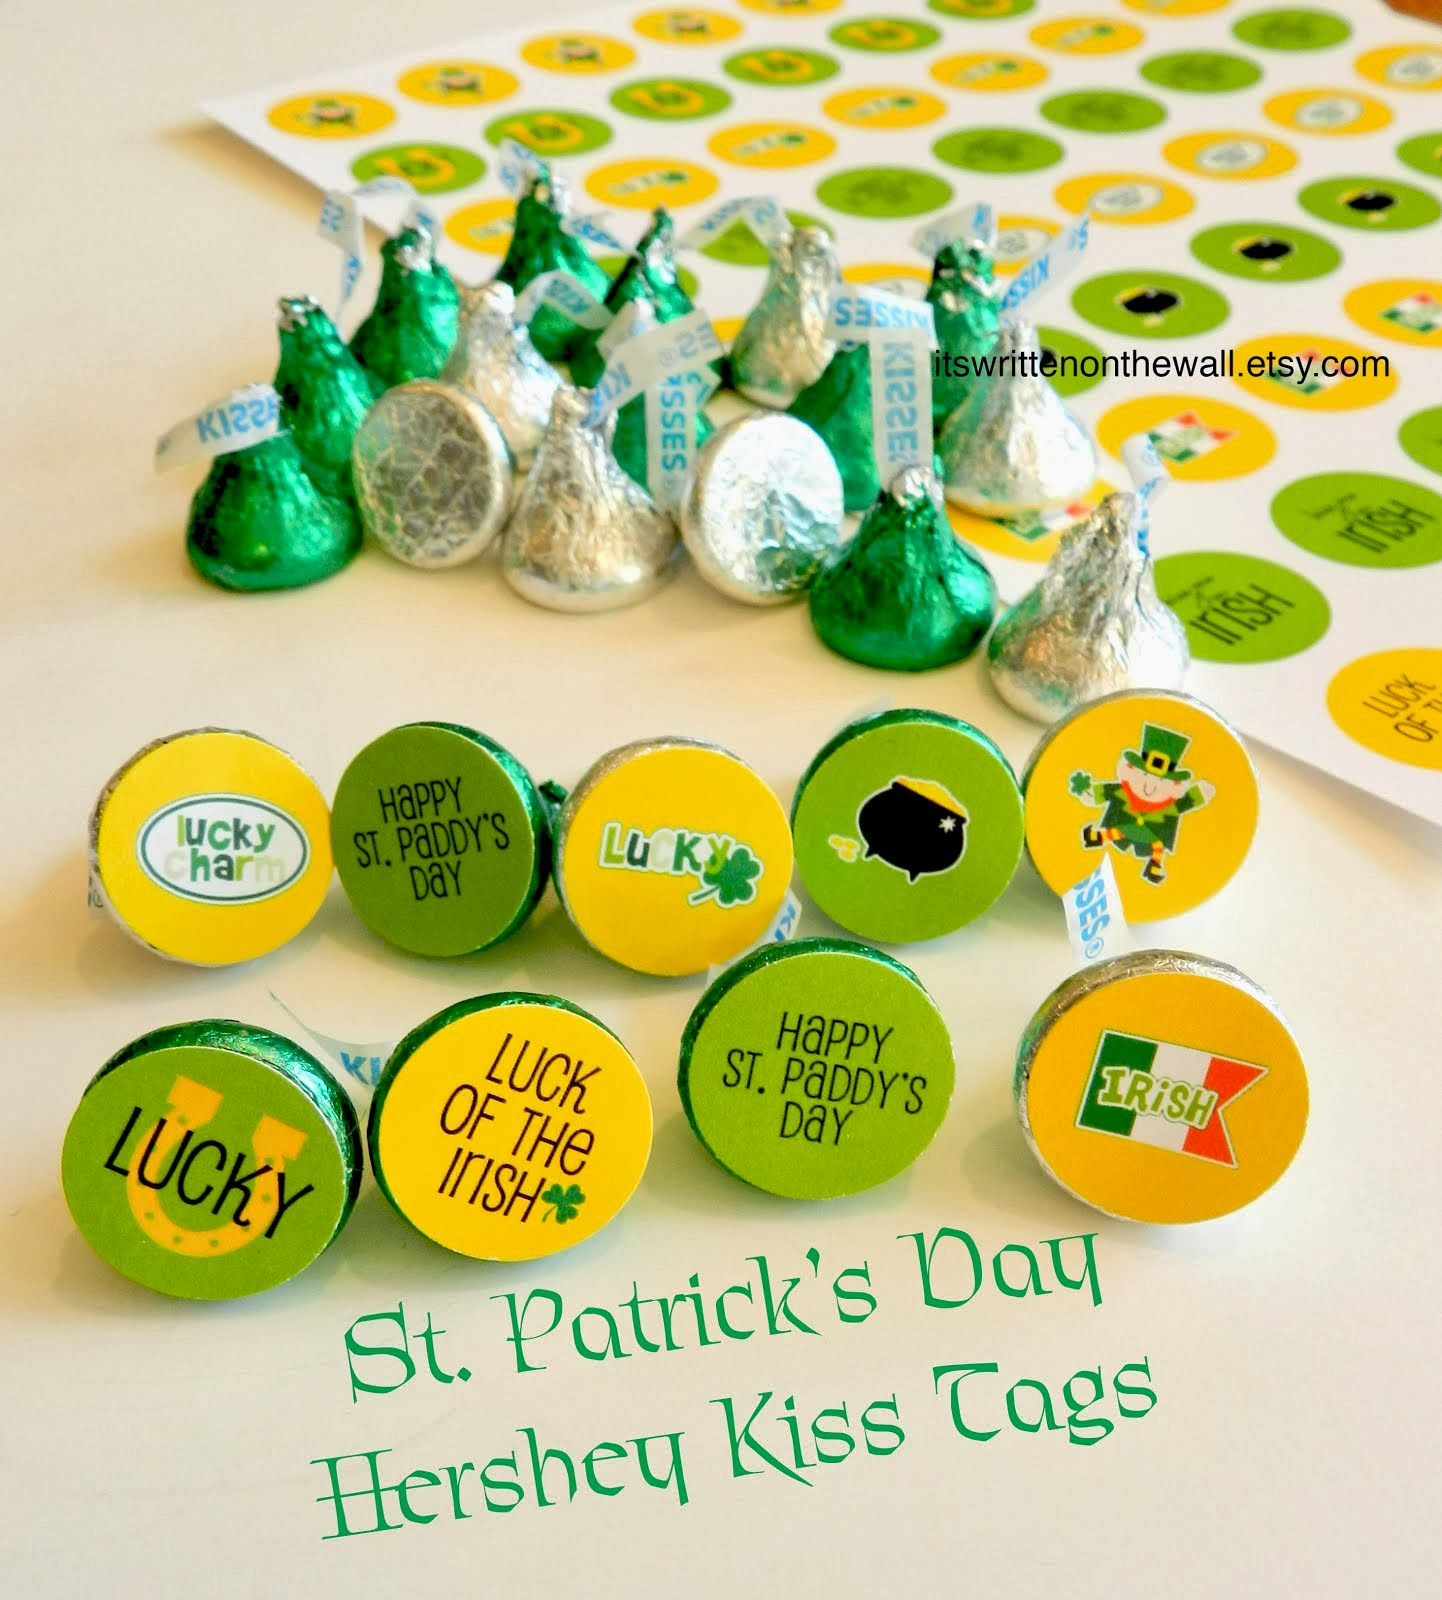 Dress up a Hershey Kiss for St. Patrick's Day